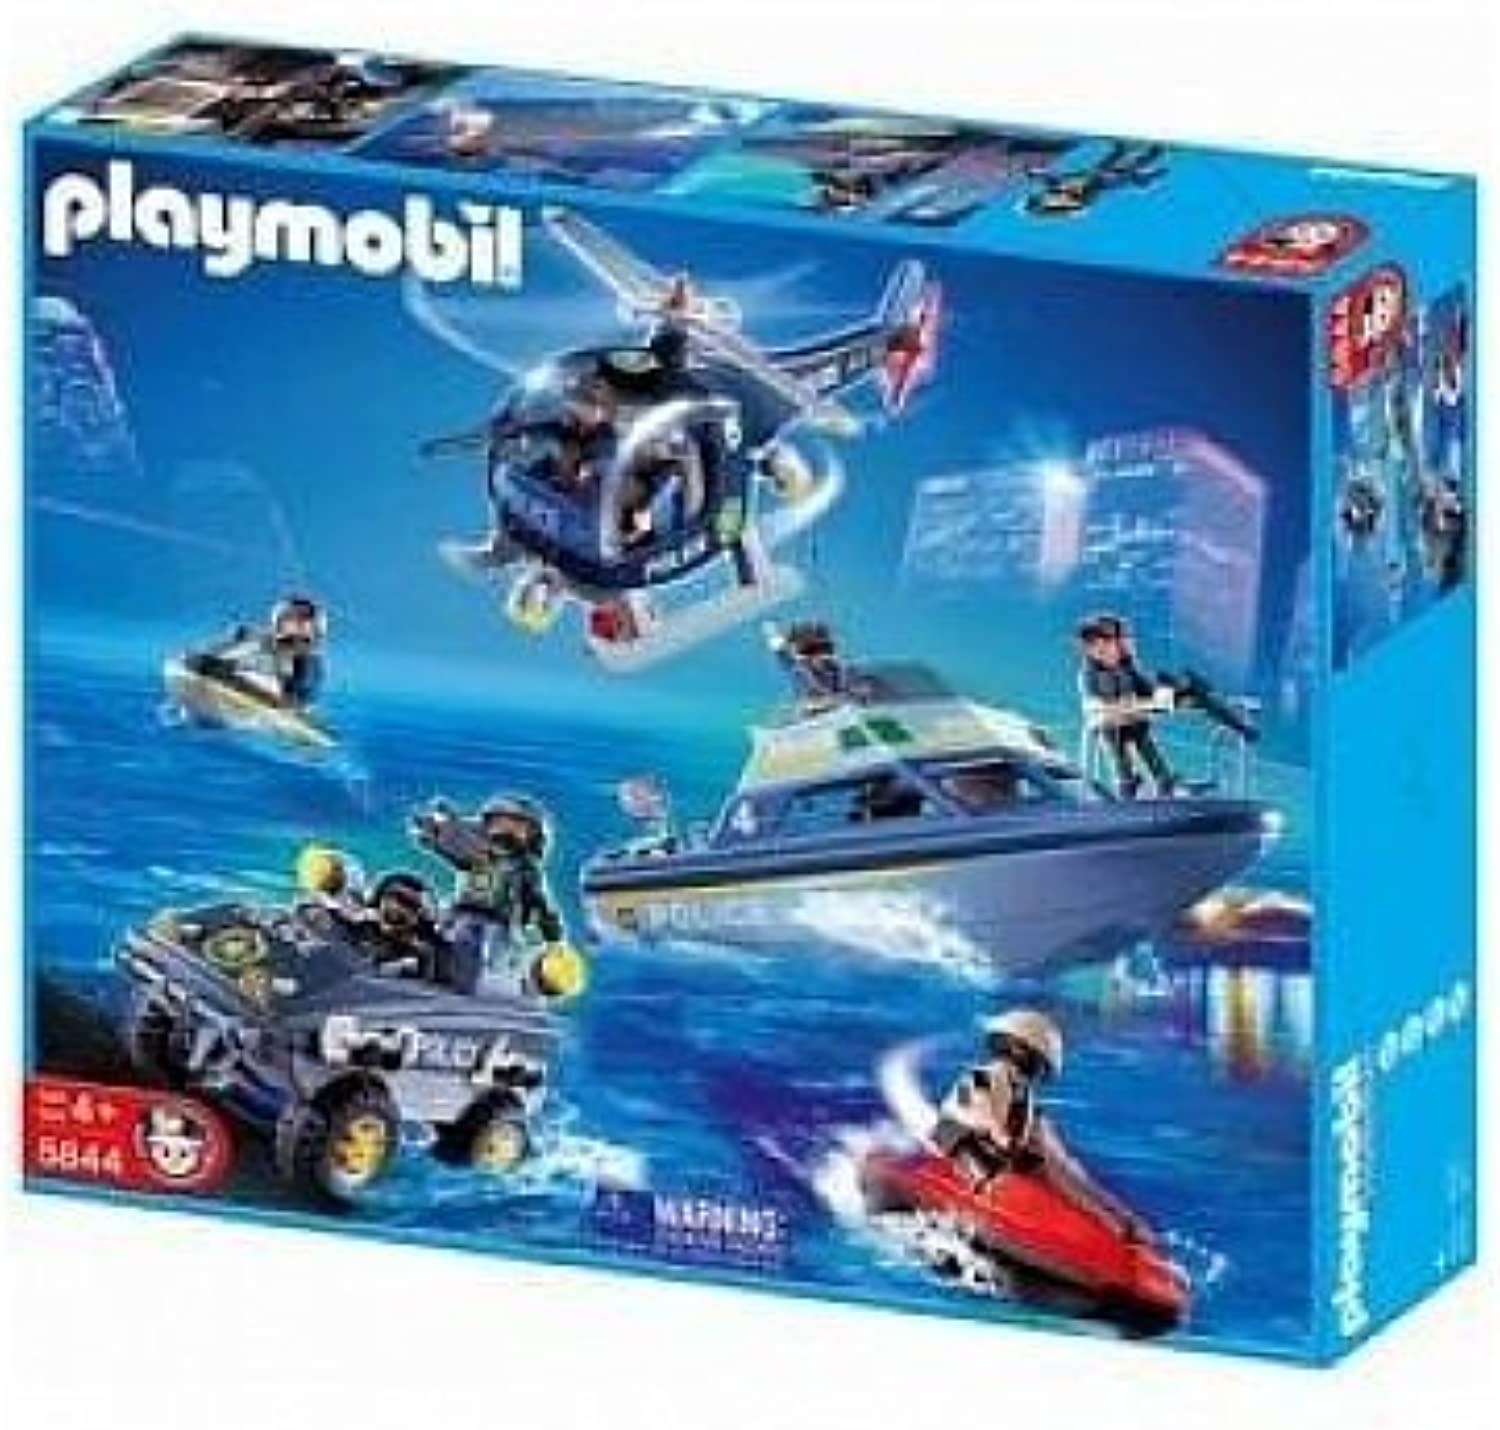 Playmobil 5844 POLICE Playset with Helicopter, Boat, 2 Jetskis and Jeep by Playmobile